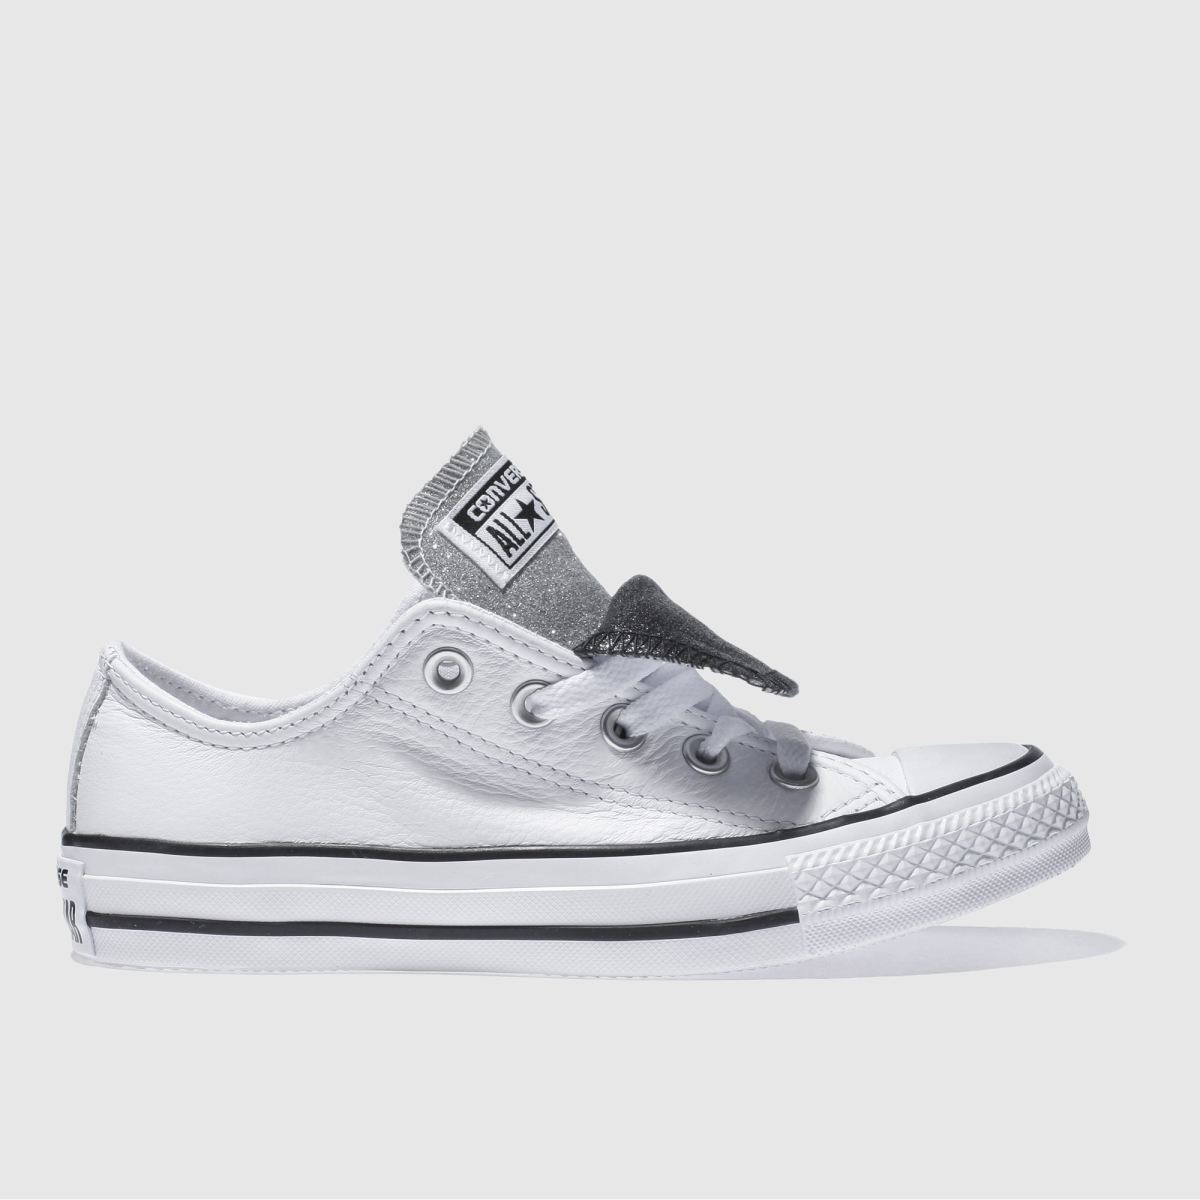 Converse White & Black All Star Double Tongue Ox Trainers